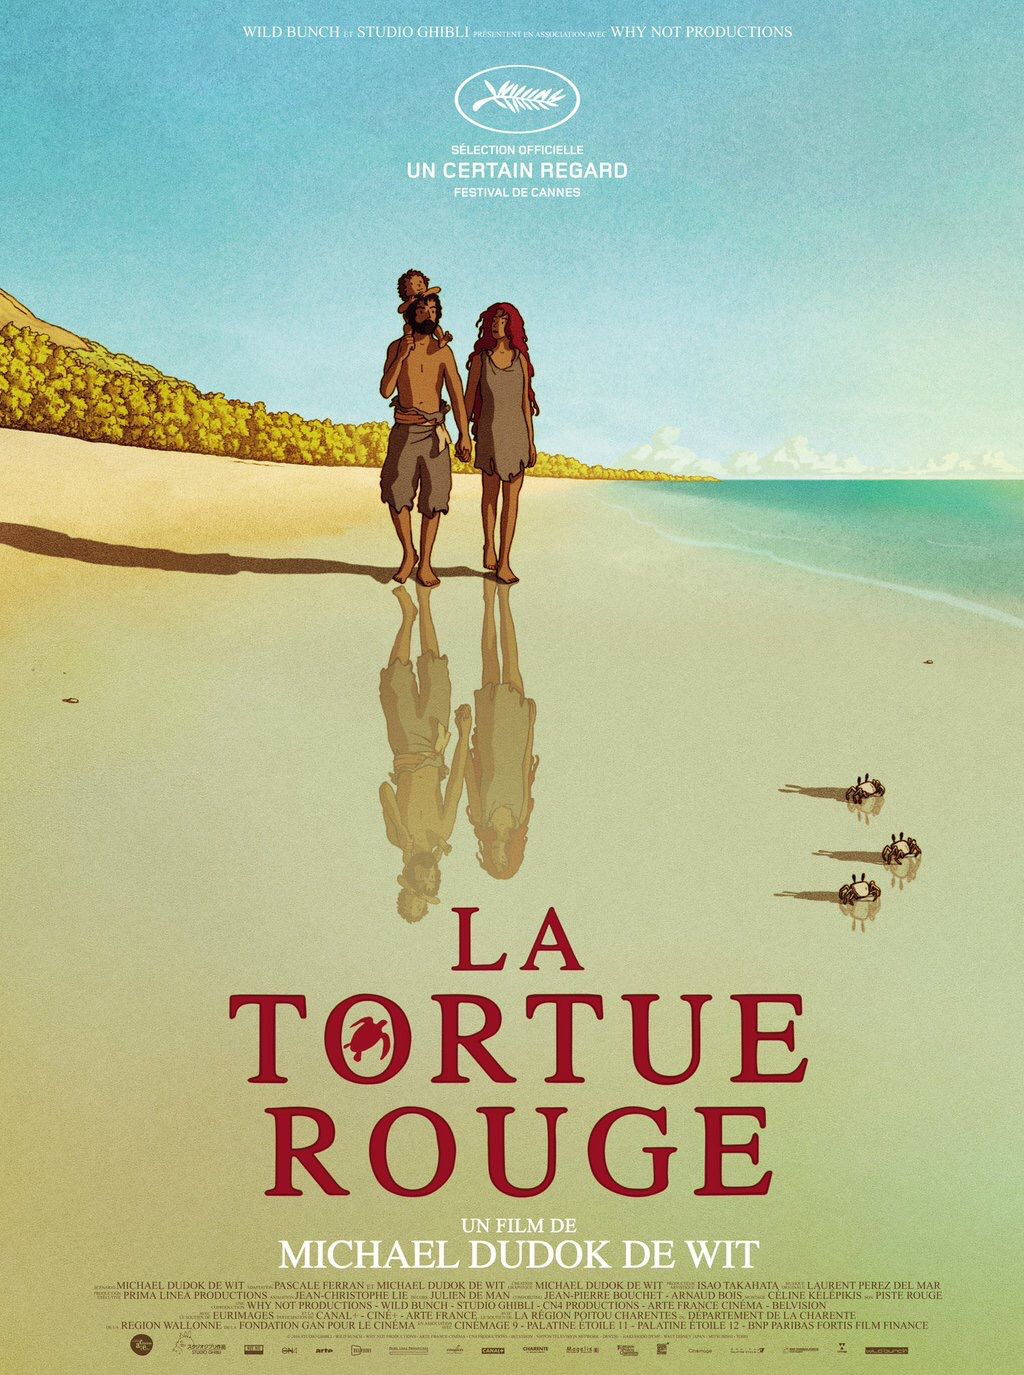 La Tortue Rouge LE Film d animation #Cannes2016 #UnCertainRegard